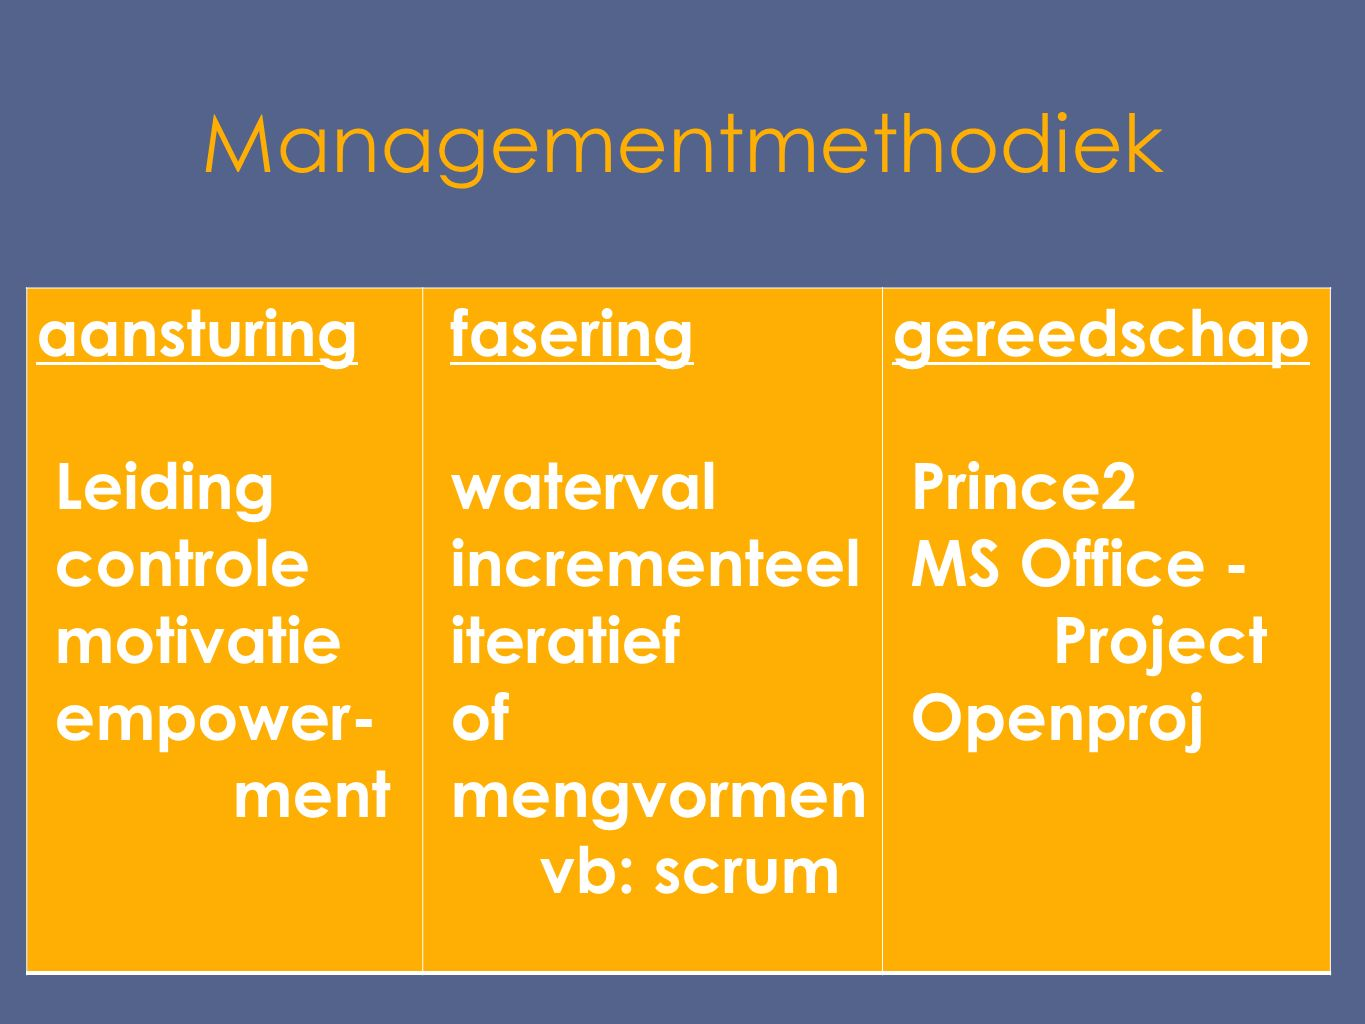 Managementmethodiek aansturing Leiding controle motivatie empower- ment fasering waterval incrementeel iteratief of mengvormen vb: scrum gereedschap Prince2 MS Office - Project Openproj